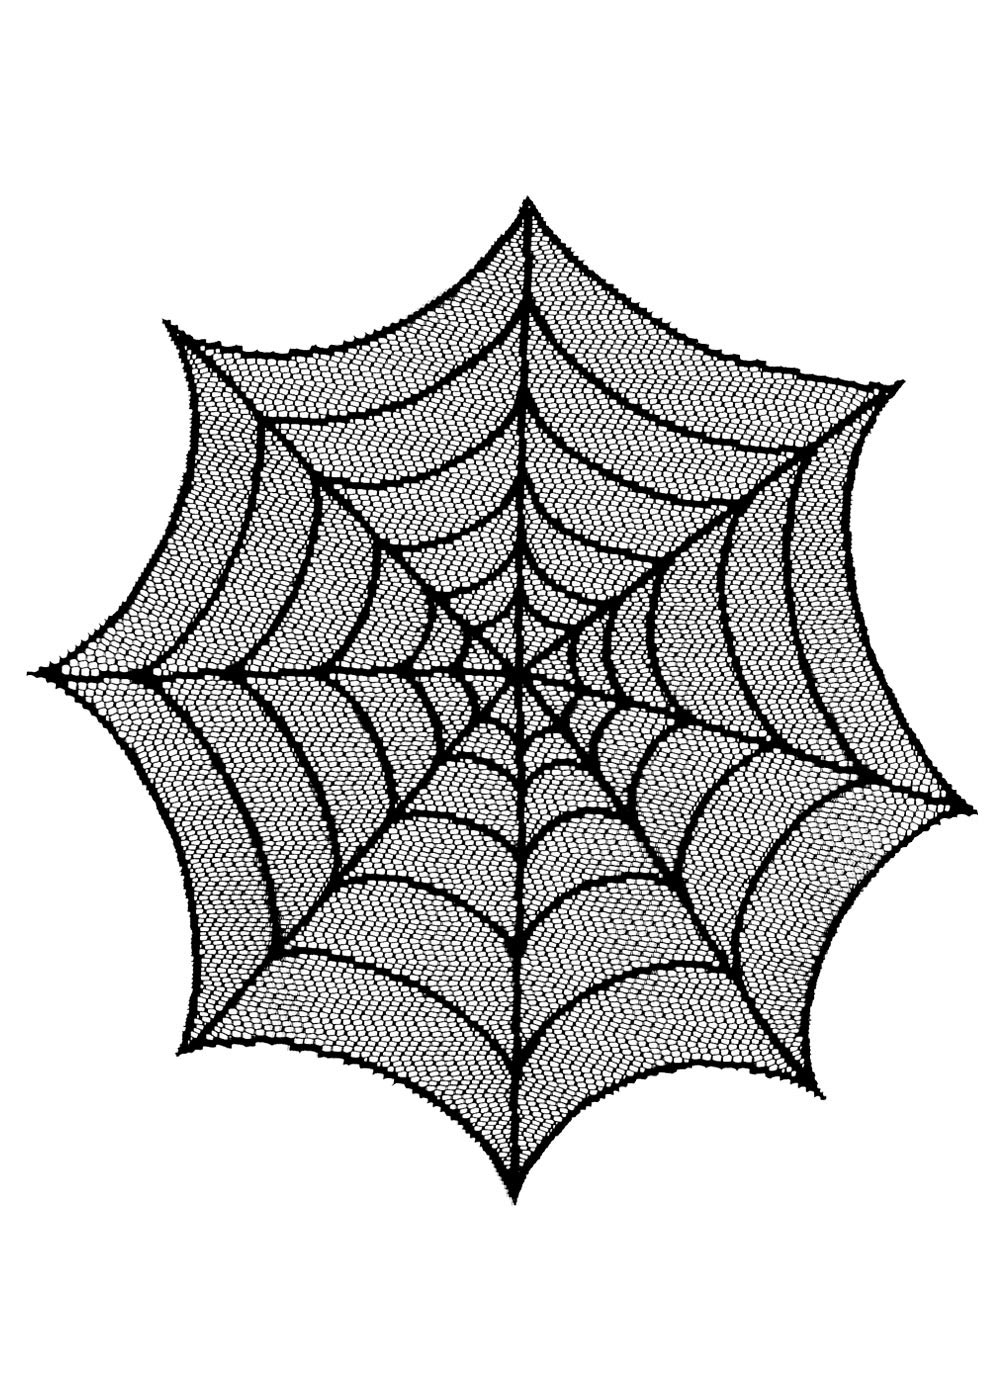 "Spider Web Doily 20"" 30% OFF! (4 LEFT)"